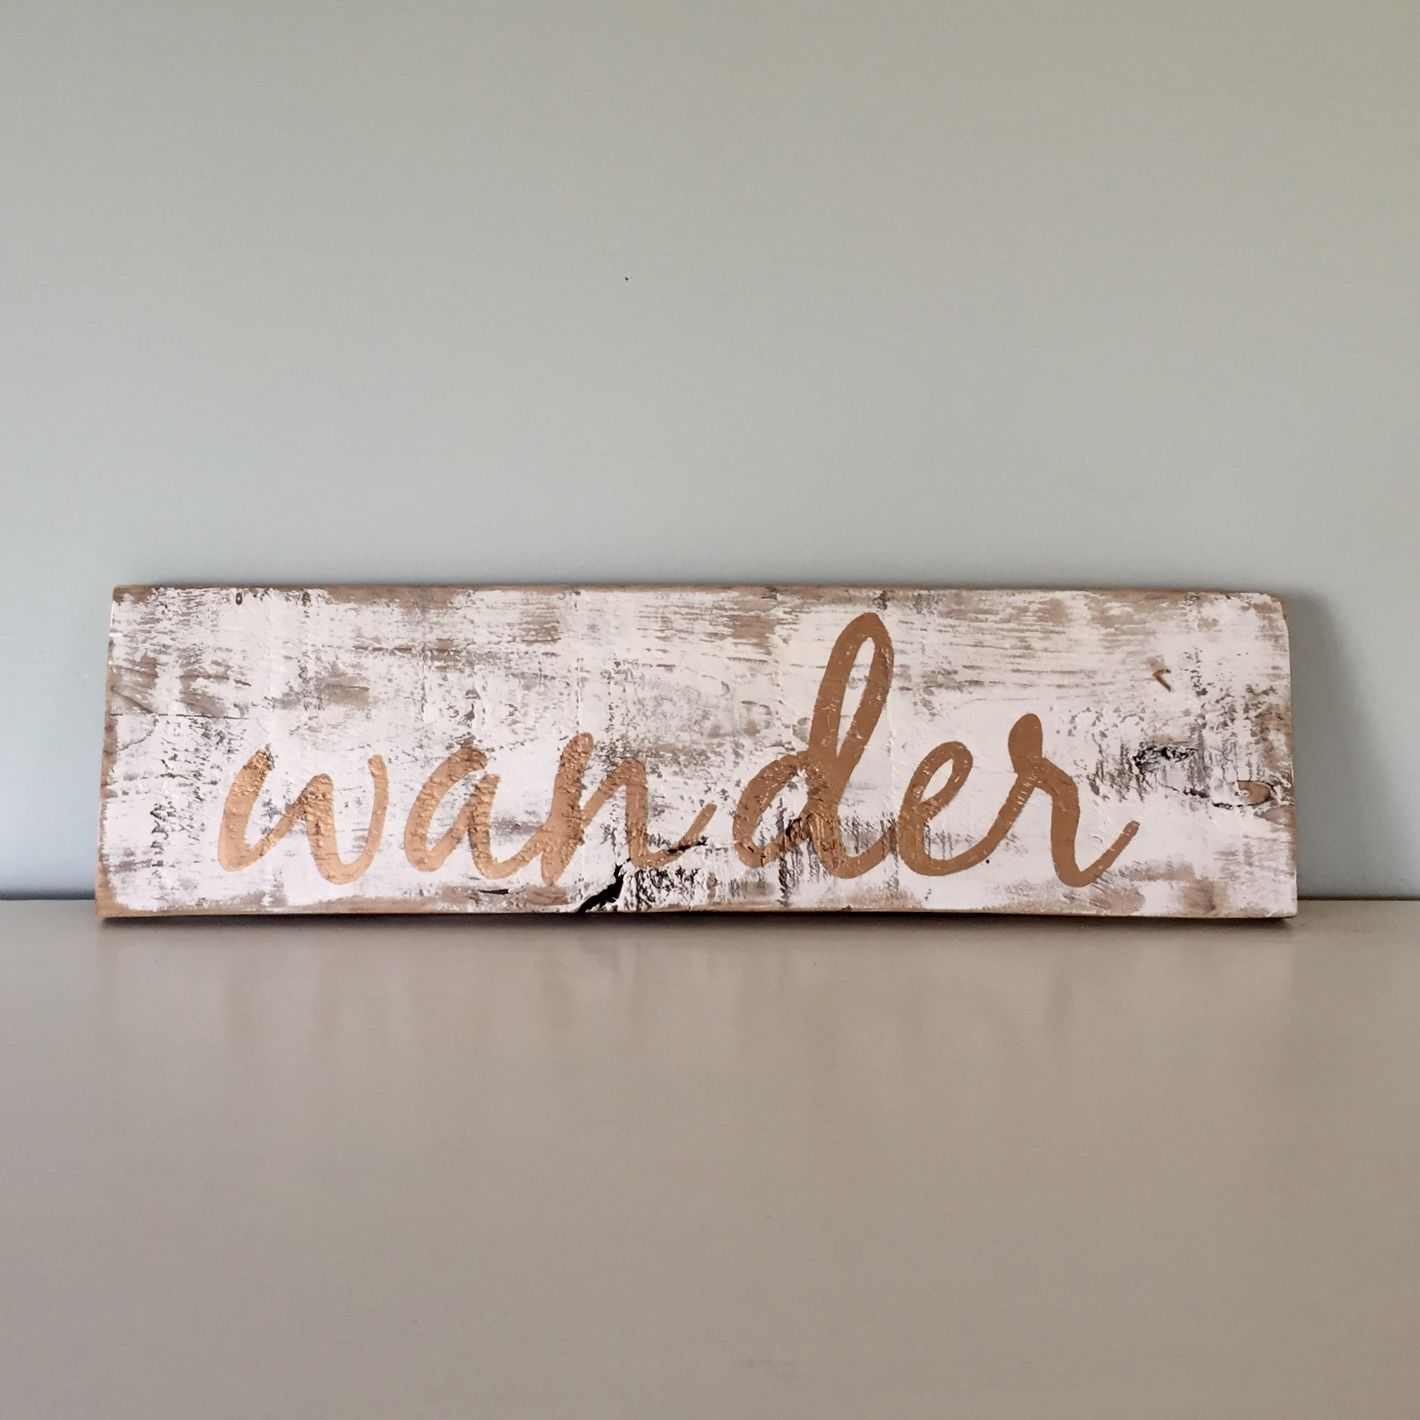 Sign - Wander - Gold - Reclaimed Barn Wood | Signs | Pinterest